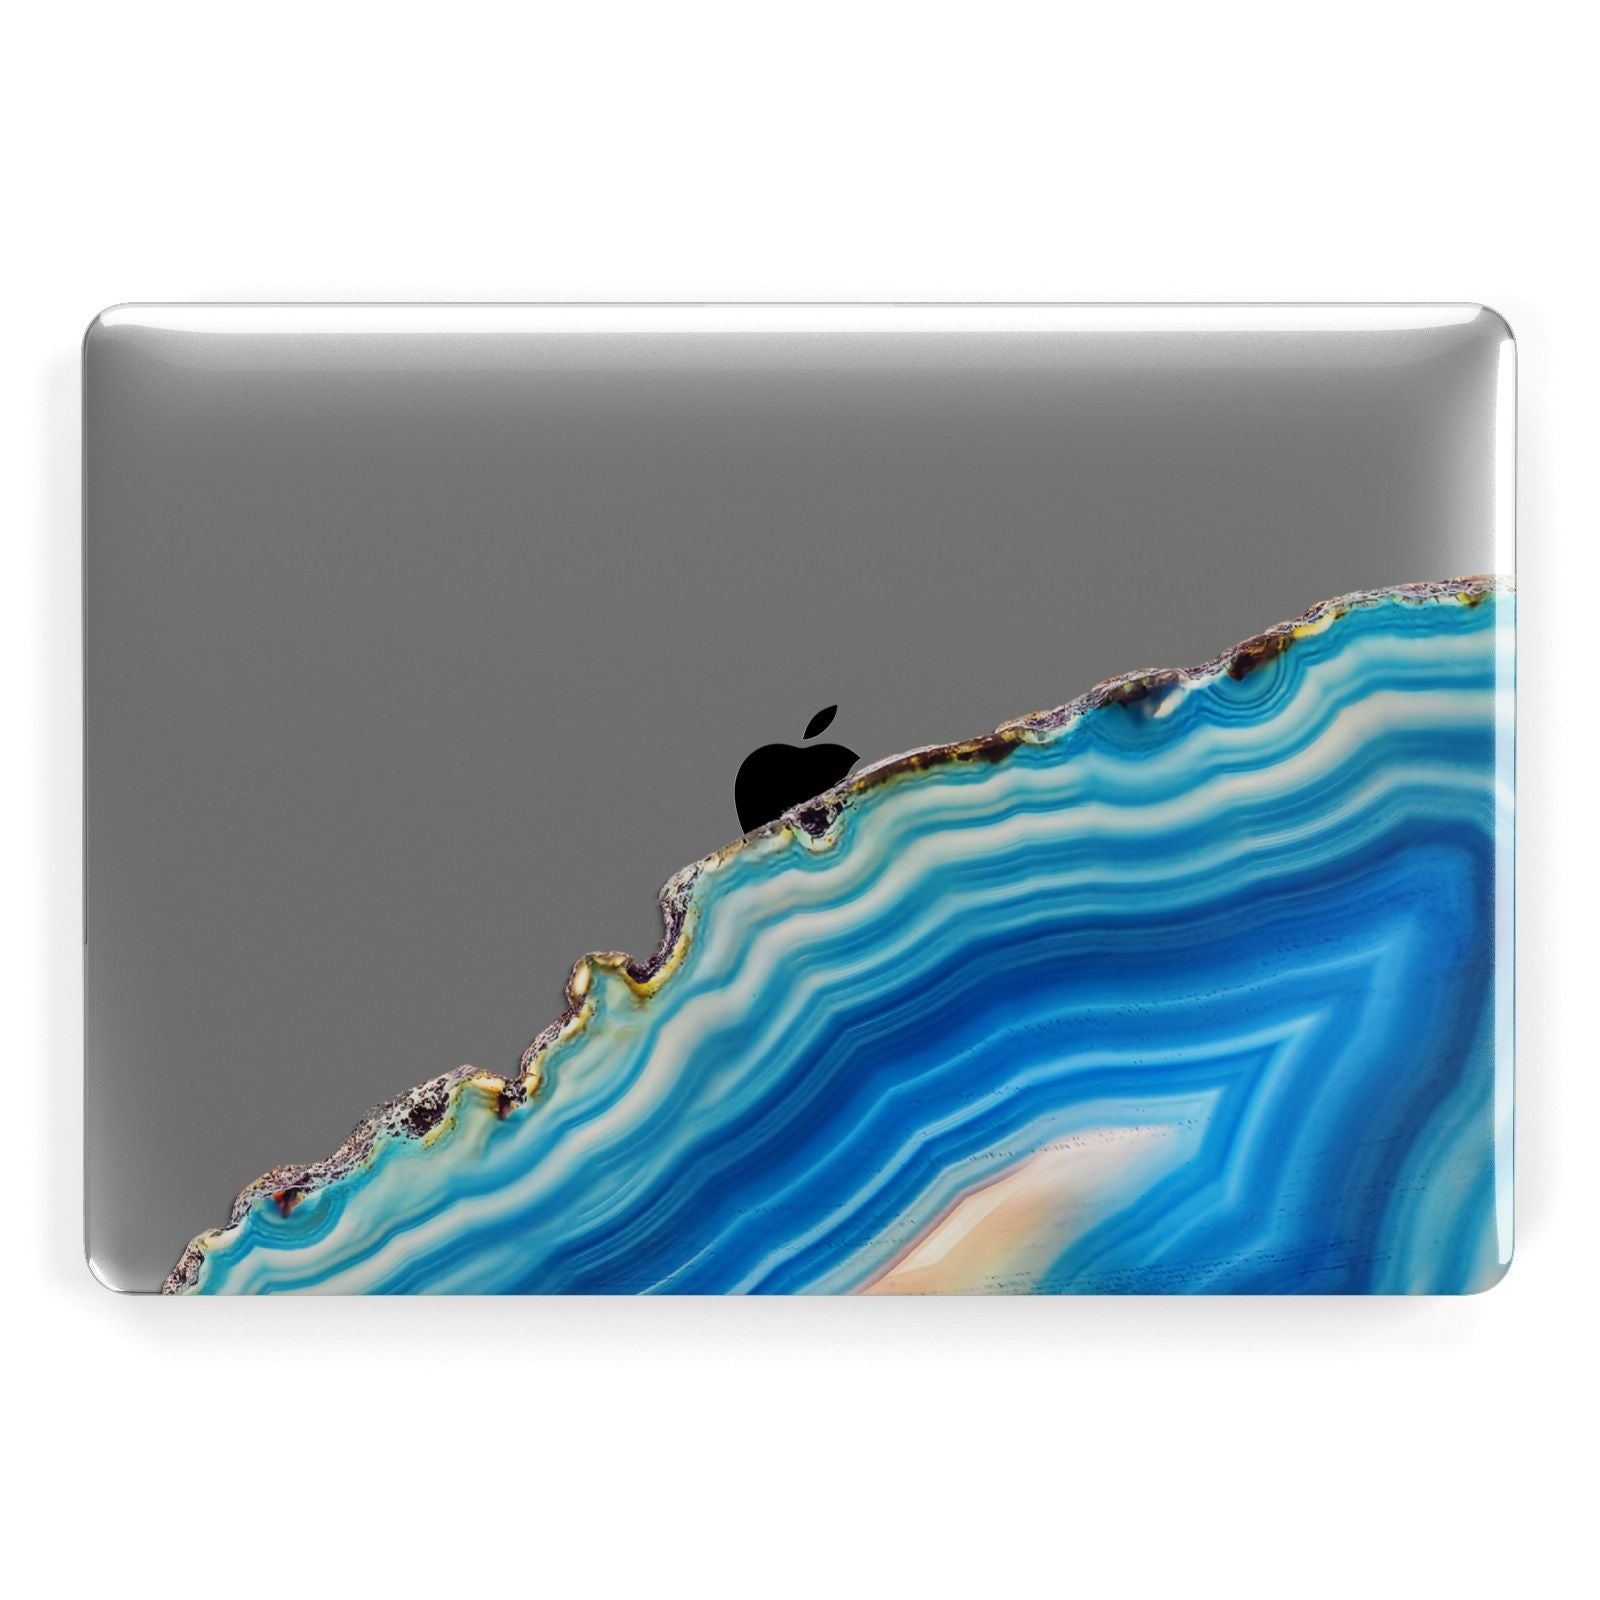 Agate Pale Blue and Bright Blue Apple MacBook Case